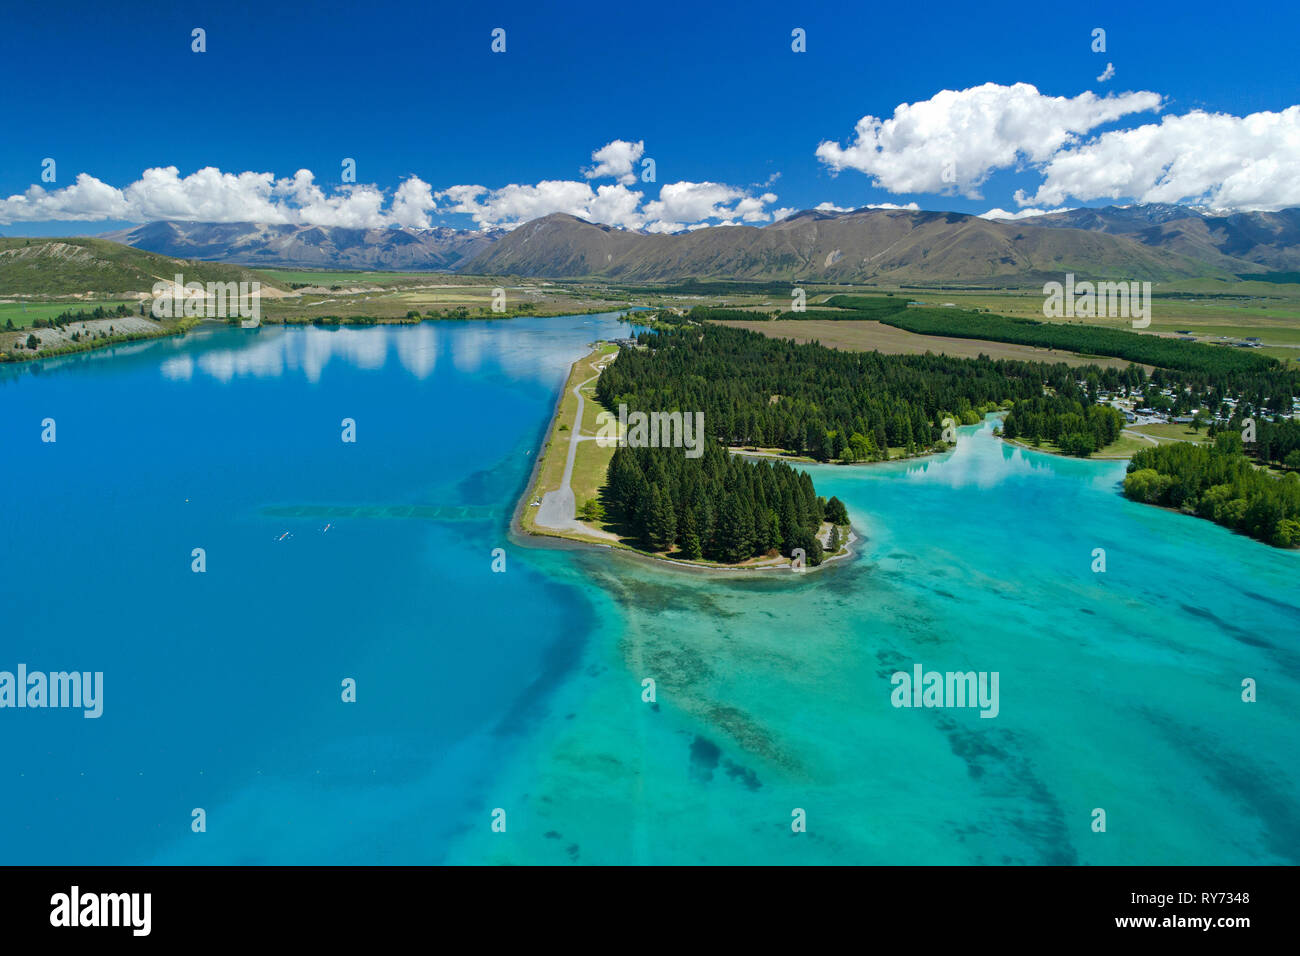 Lake Ruataniwha, and Ruataniwha Rowing Course, Mackenzie Country, South Island, New Zealand - aerial - Stock Image